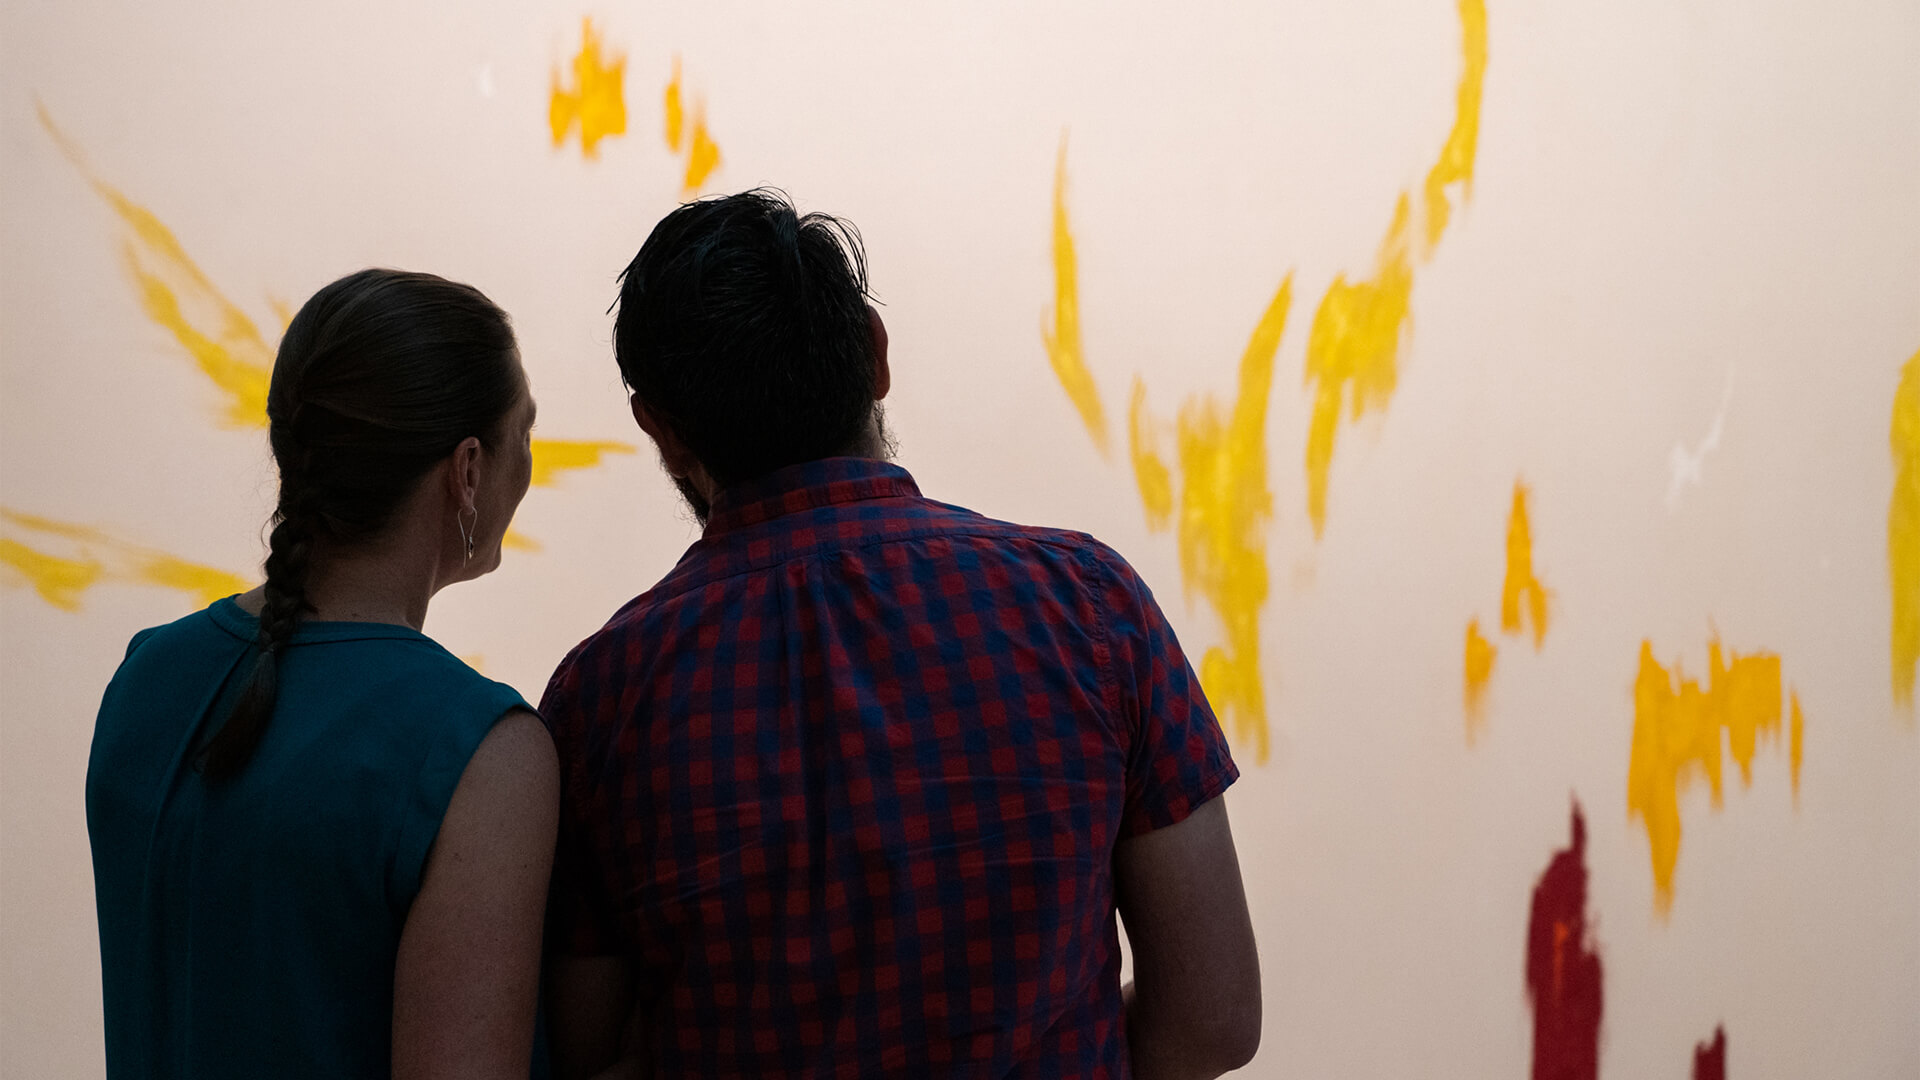 A husband and wife lean into each other and look at a painting in a dark art gallery